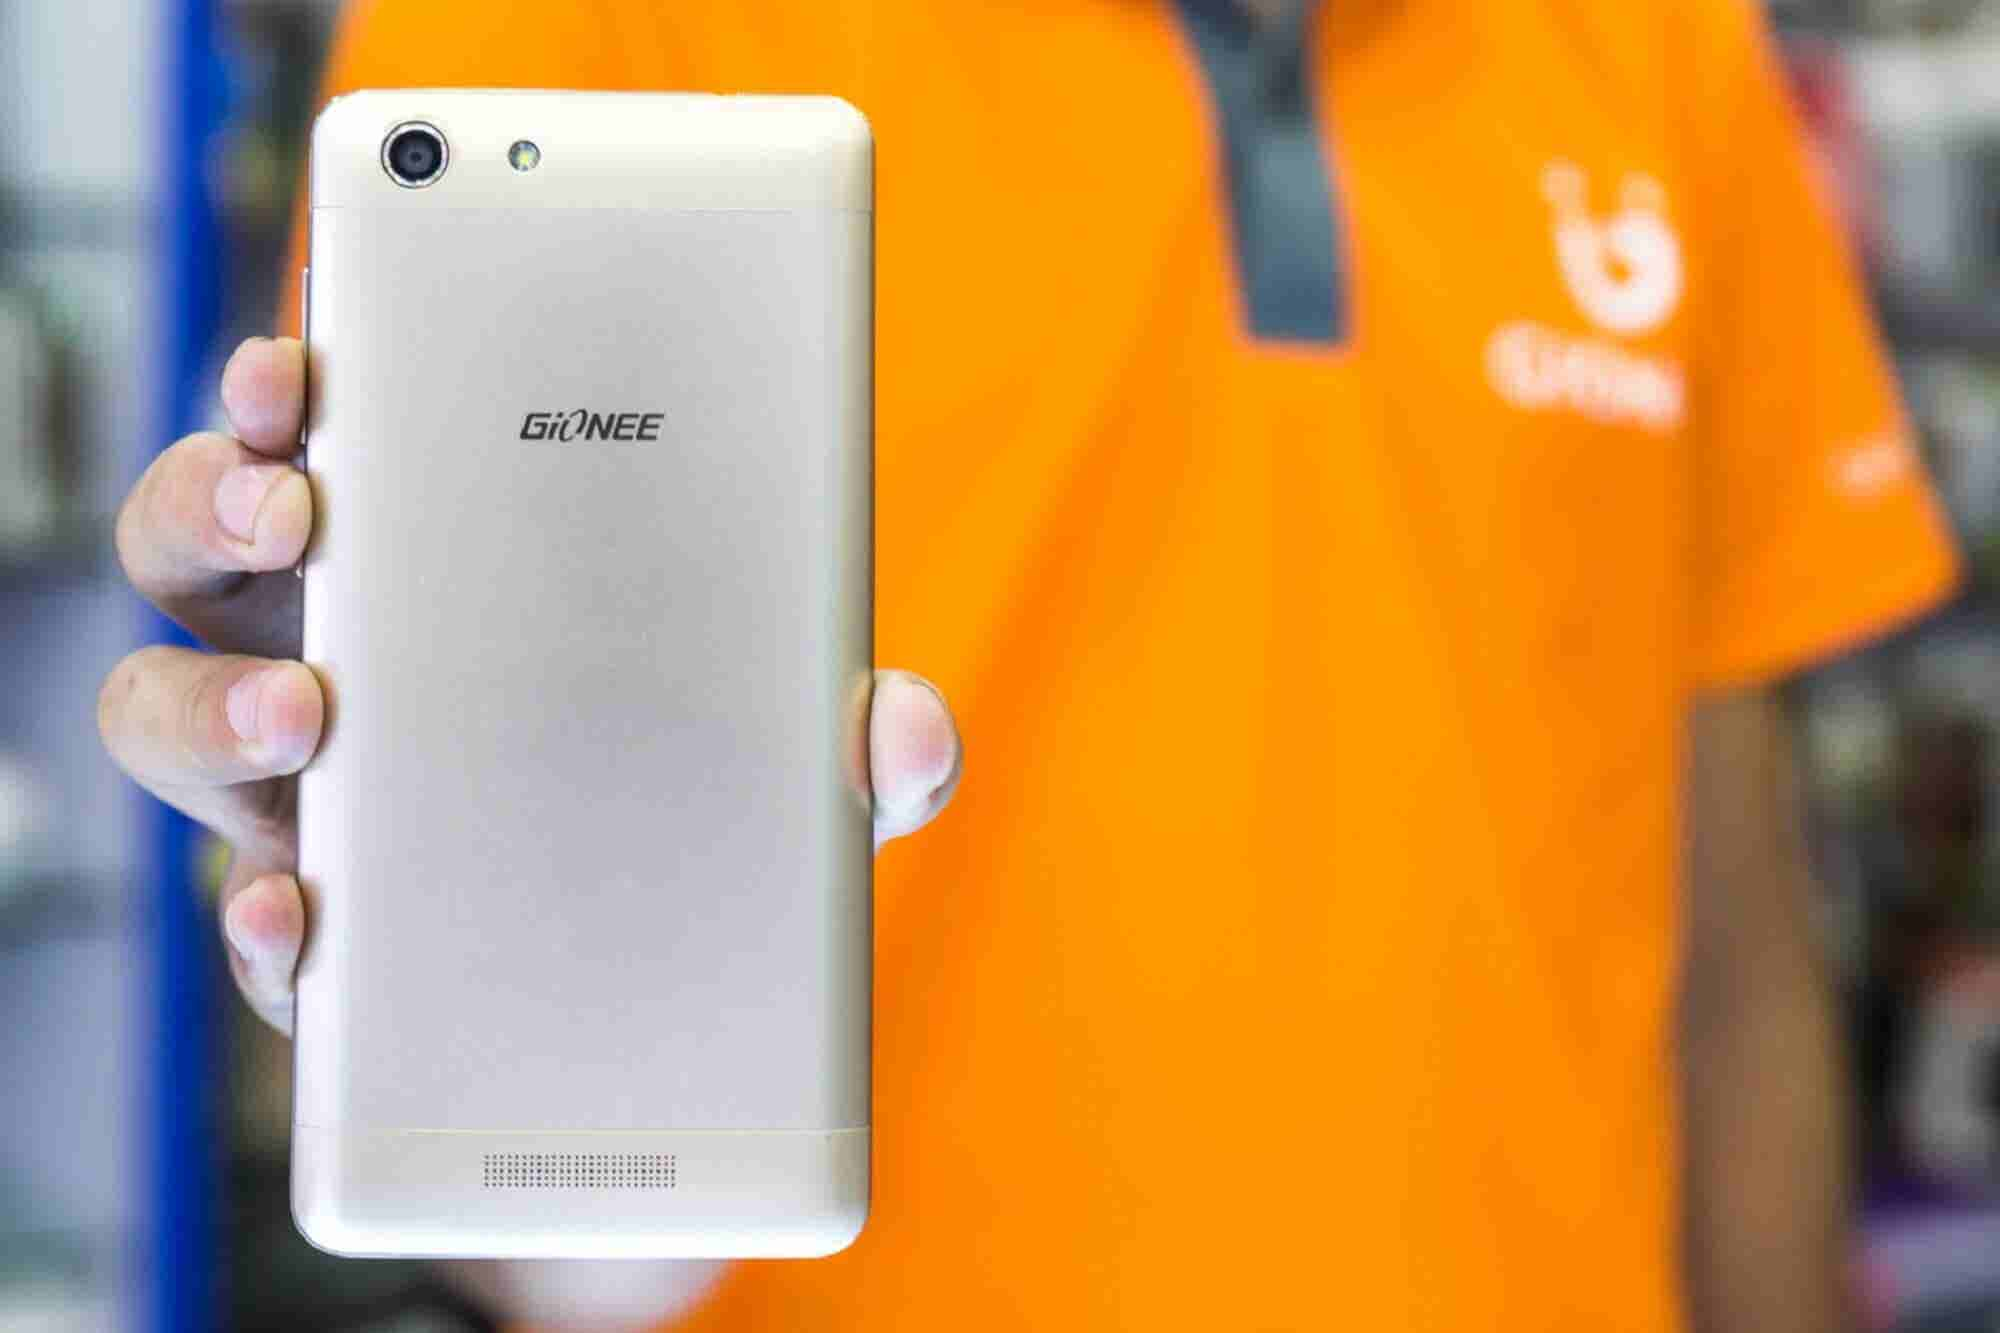 Friday Flashback: This Chinese Smartphone Maker Files for Bankruptcy